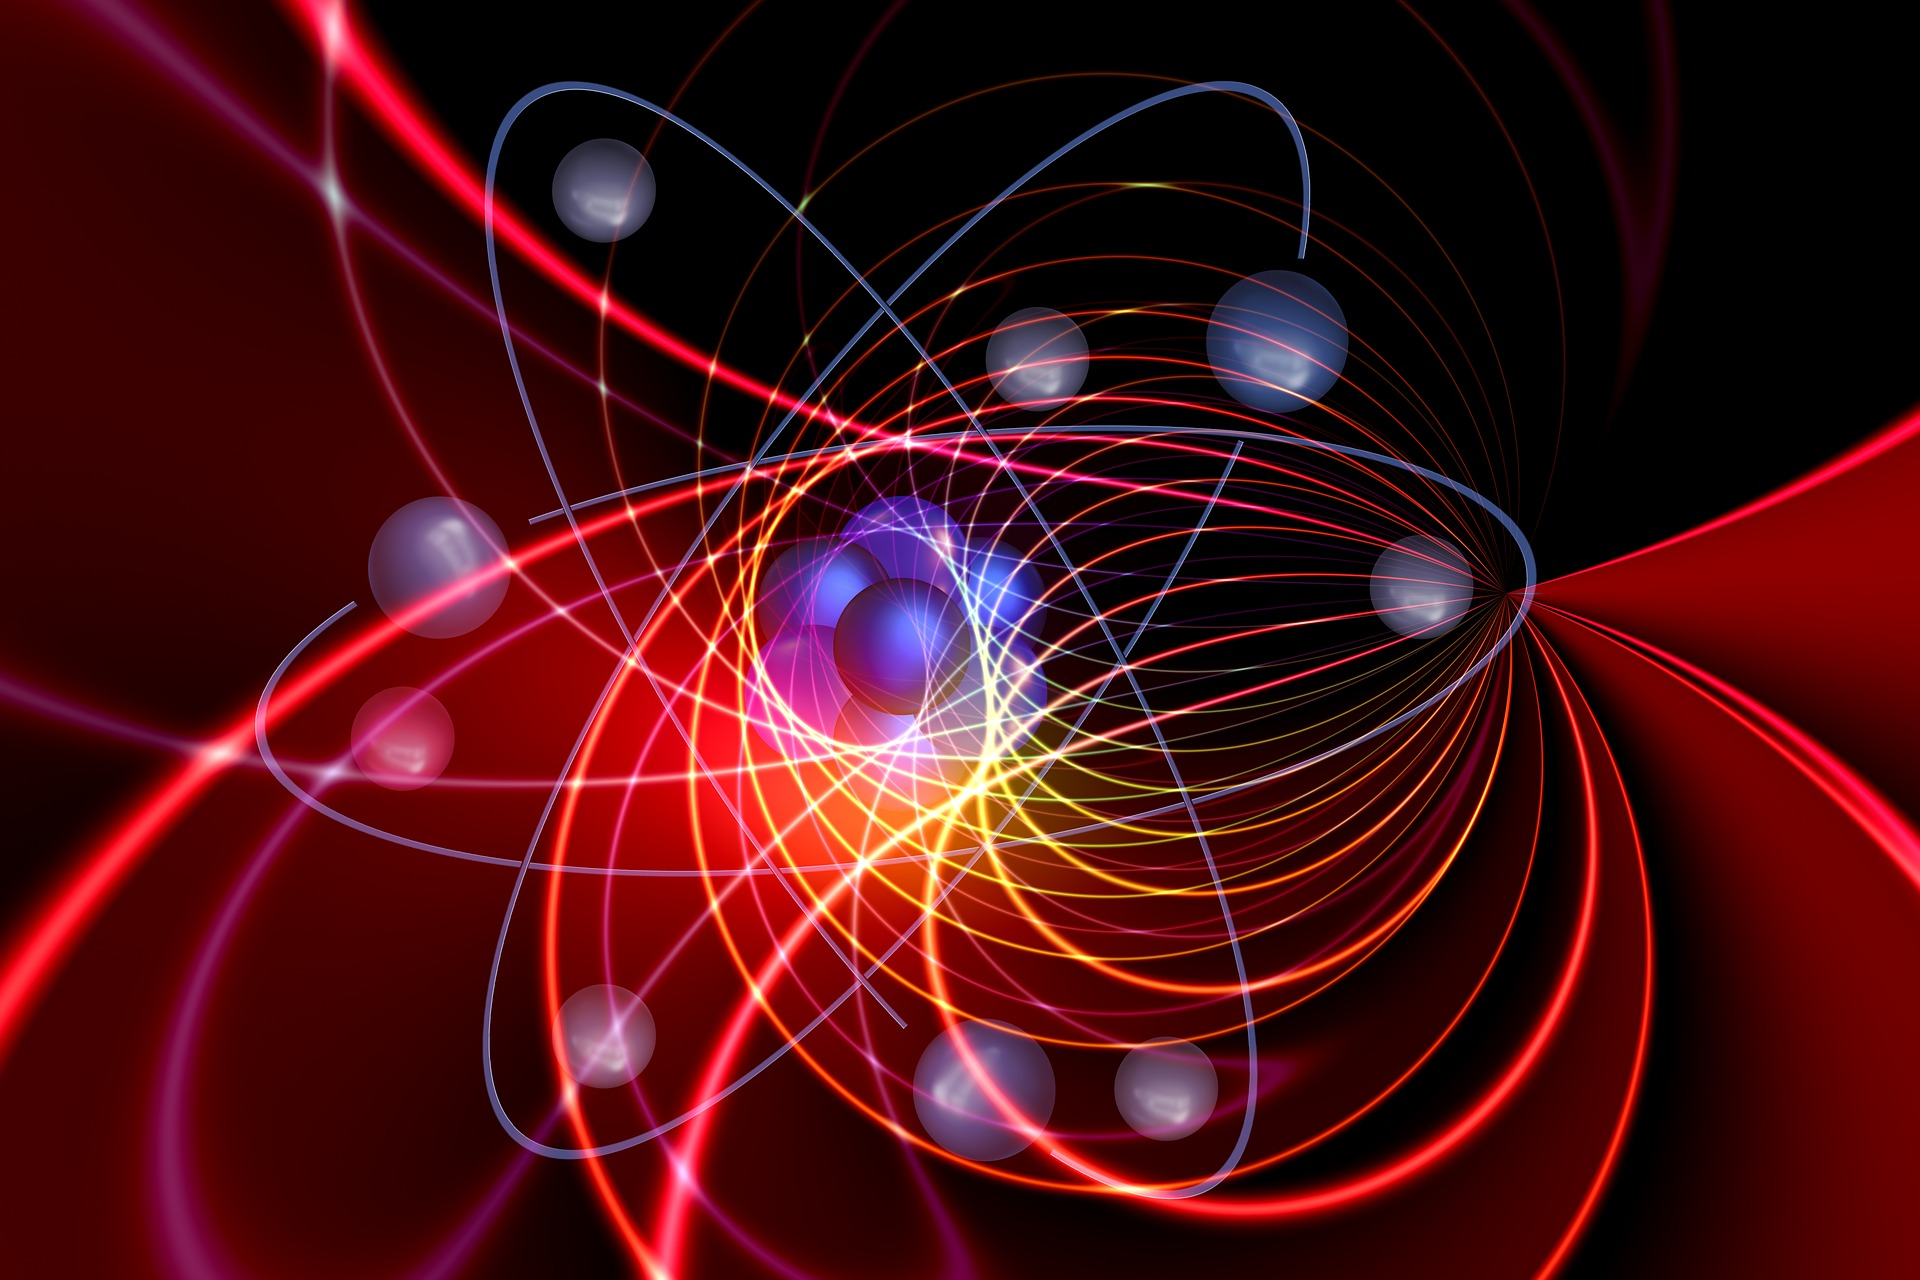 Does Quantum leap with your health?